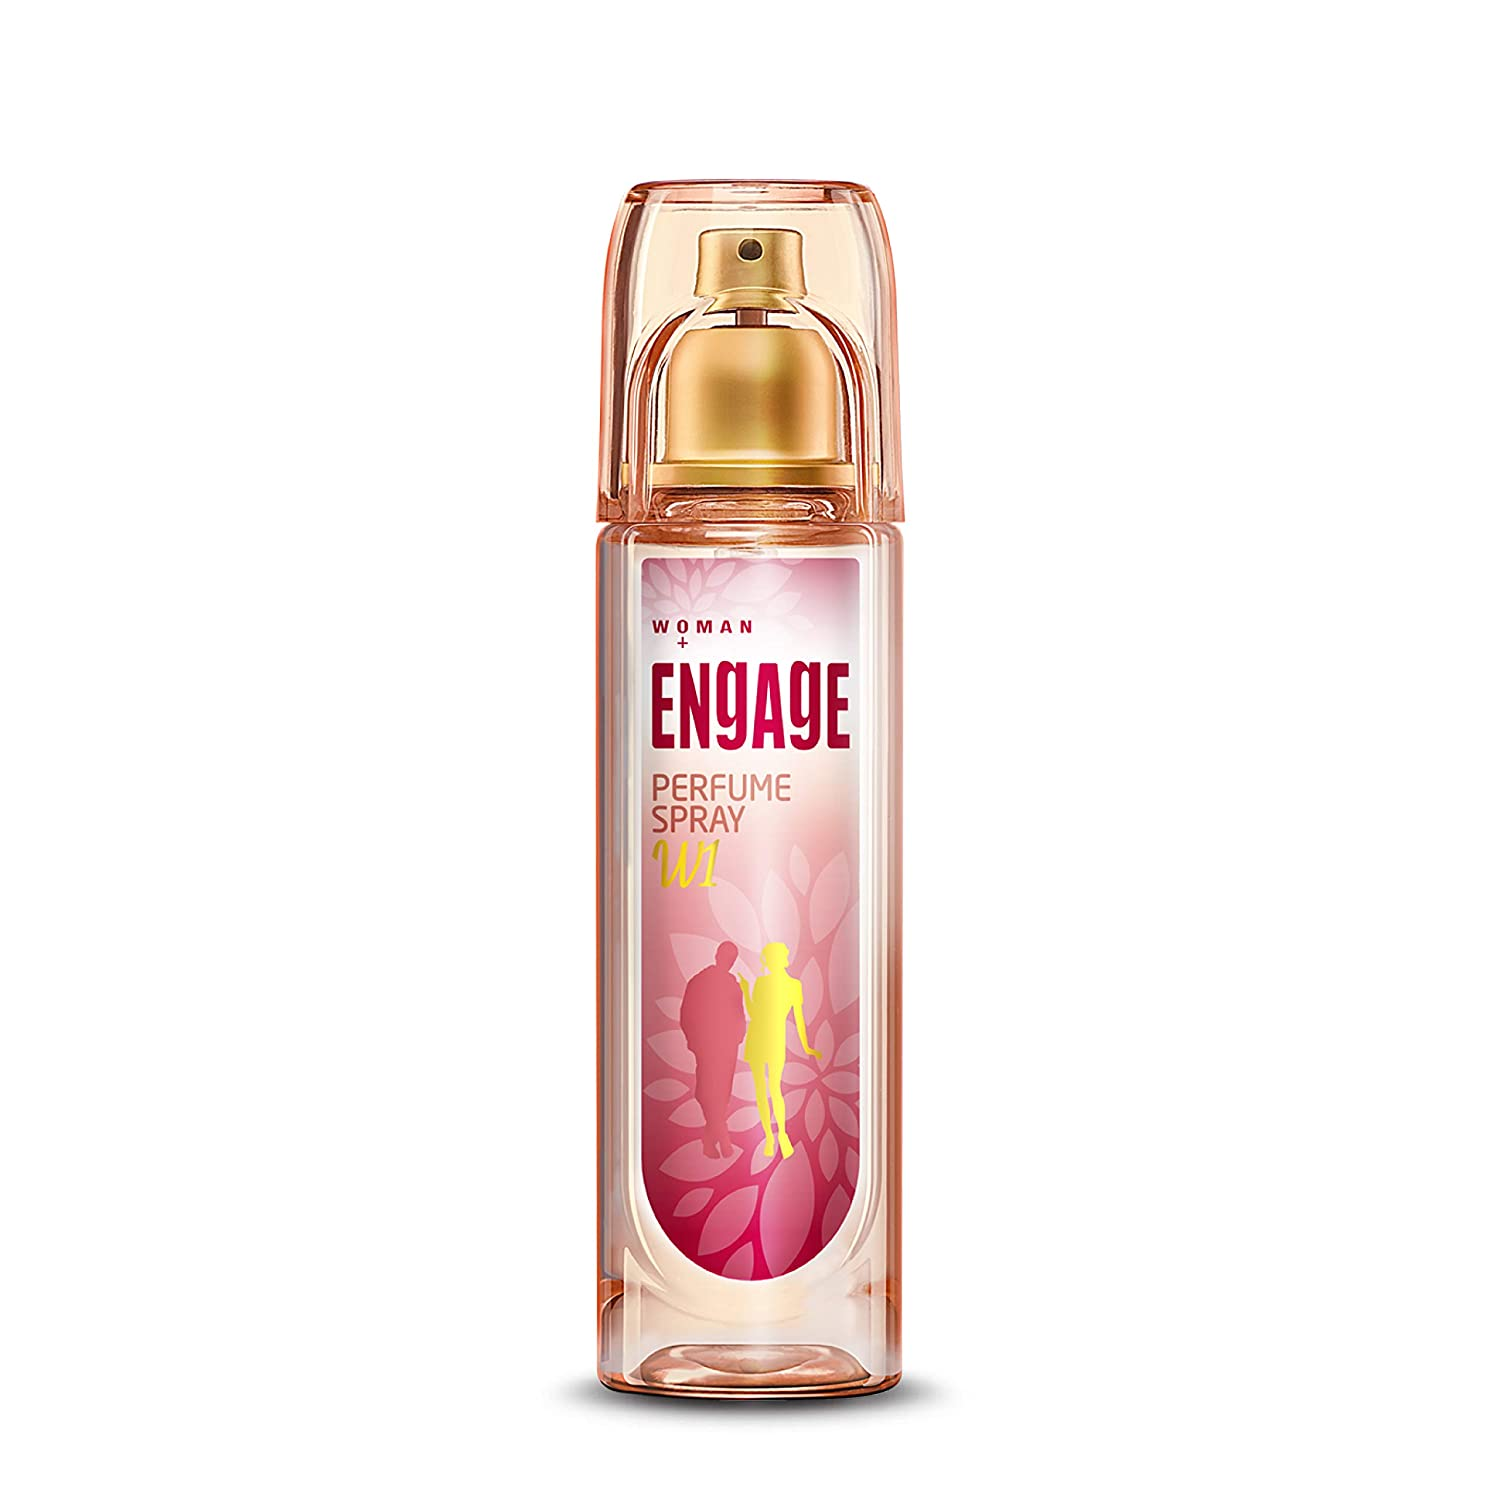 Engage W1 Perfume Spray – For Women